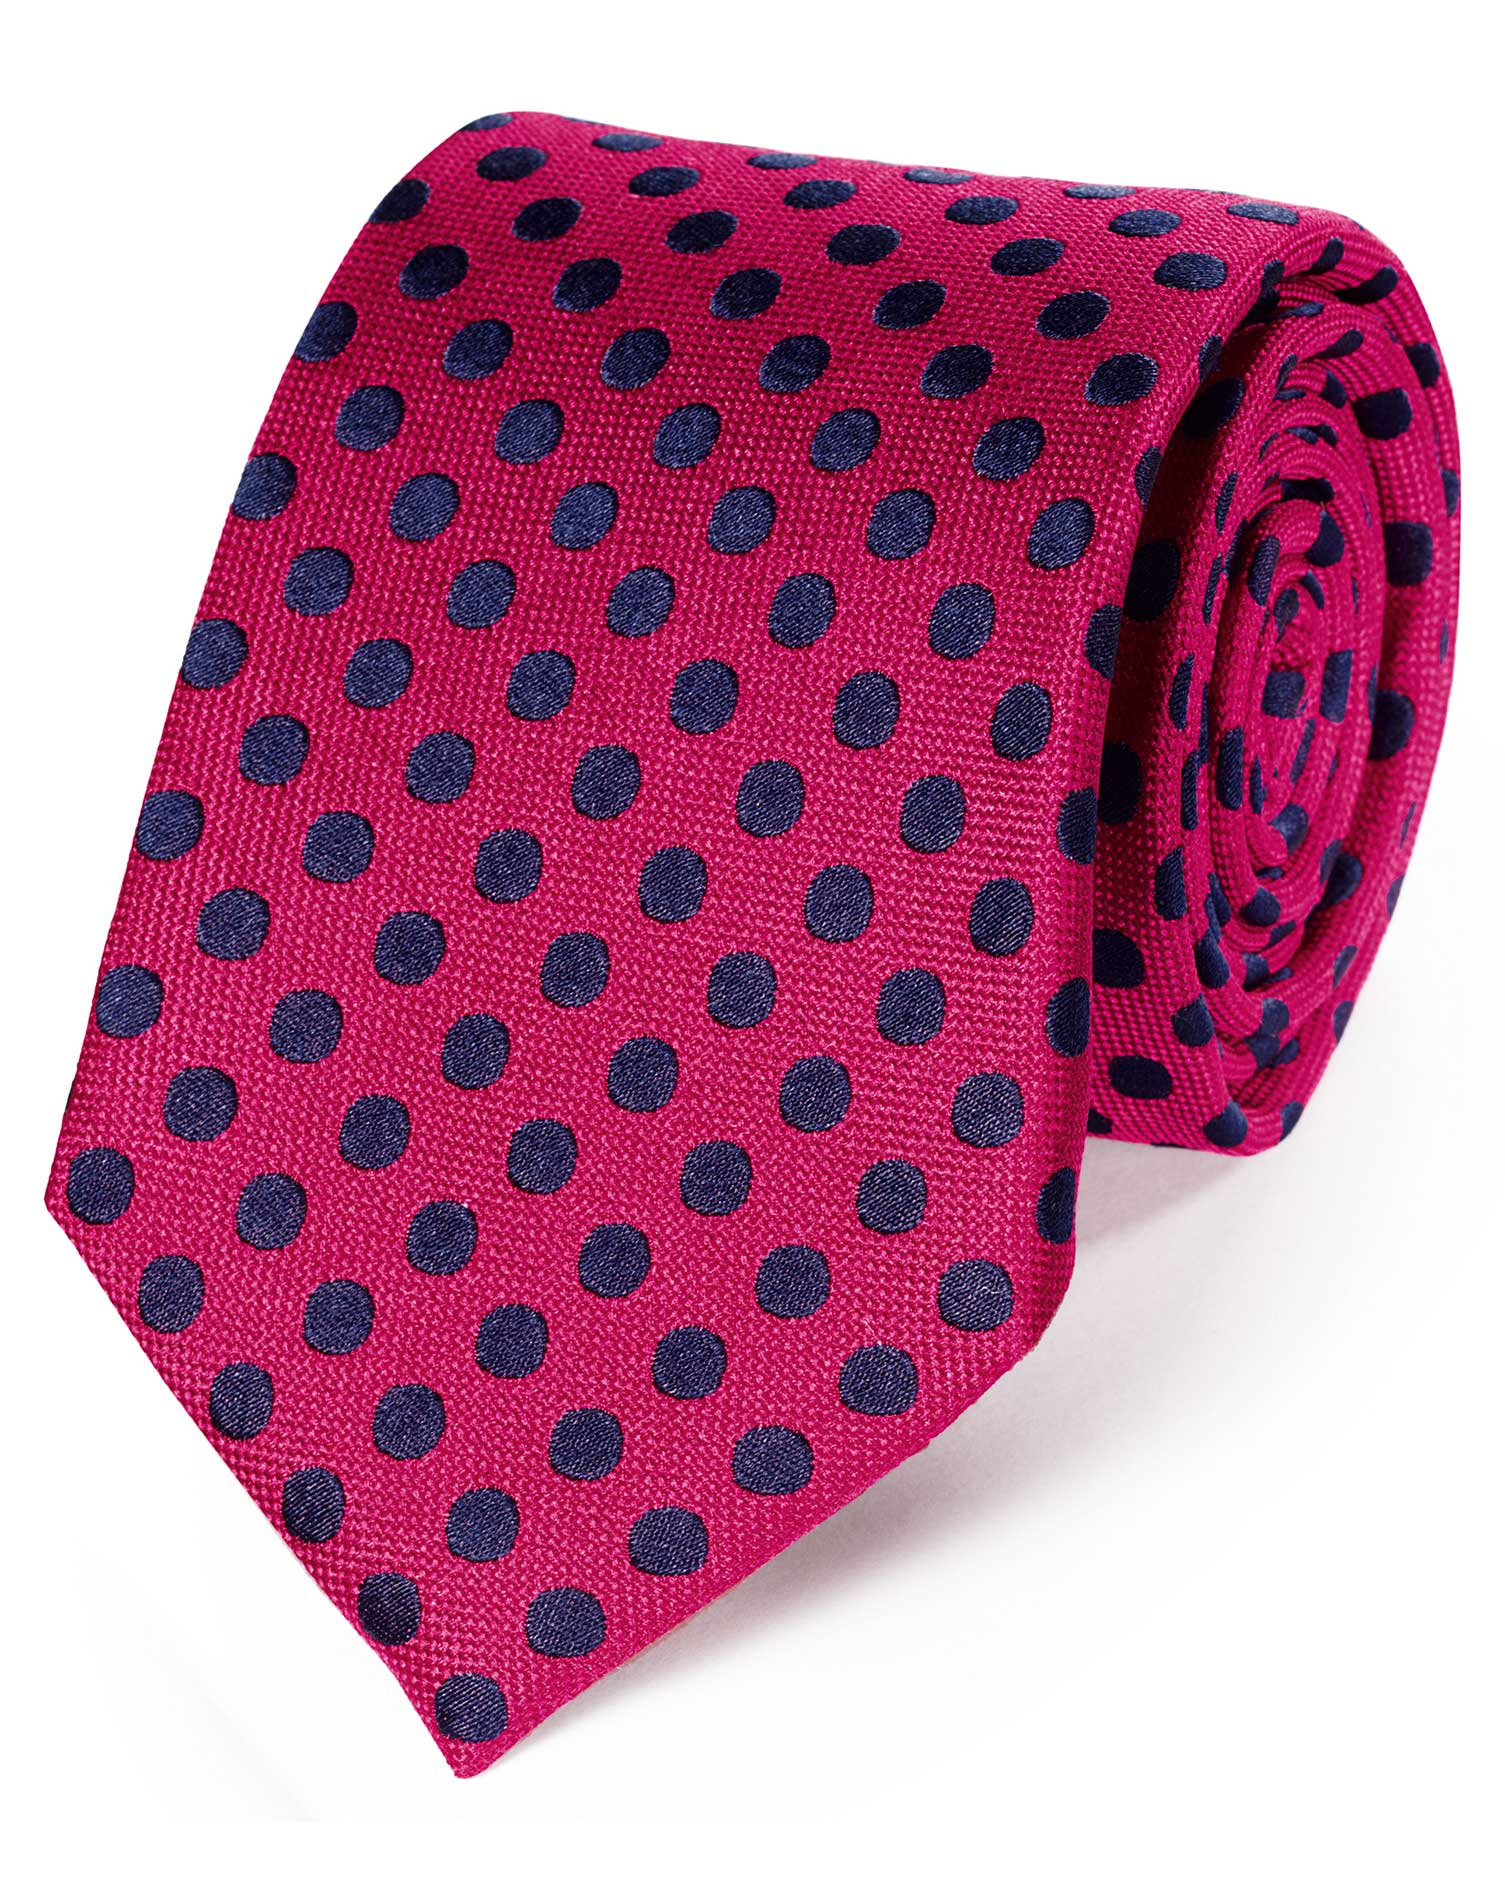 Pink and Navy Silk Large Spot Classic Tie Size OSFA by Charles Tyrwhitt